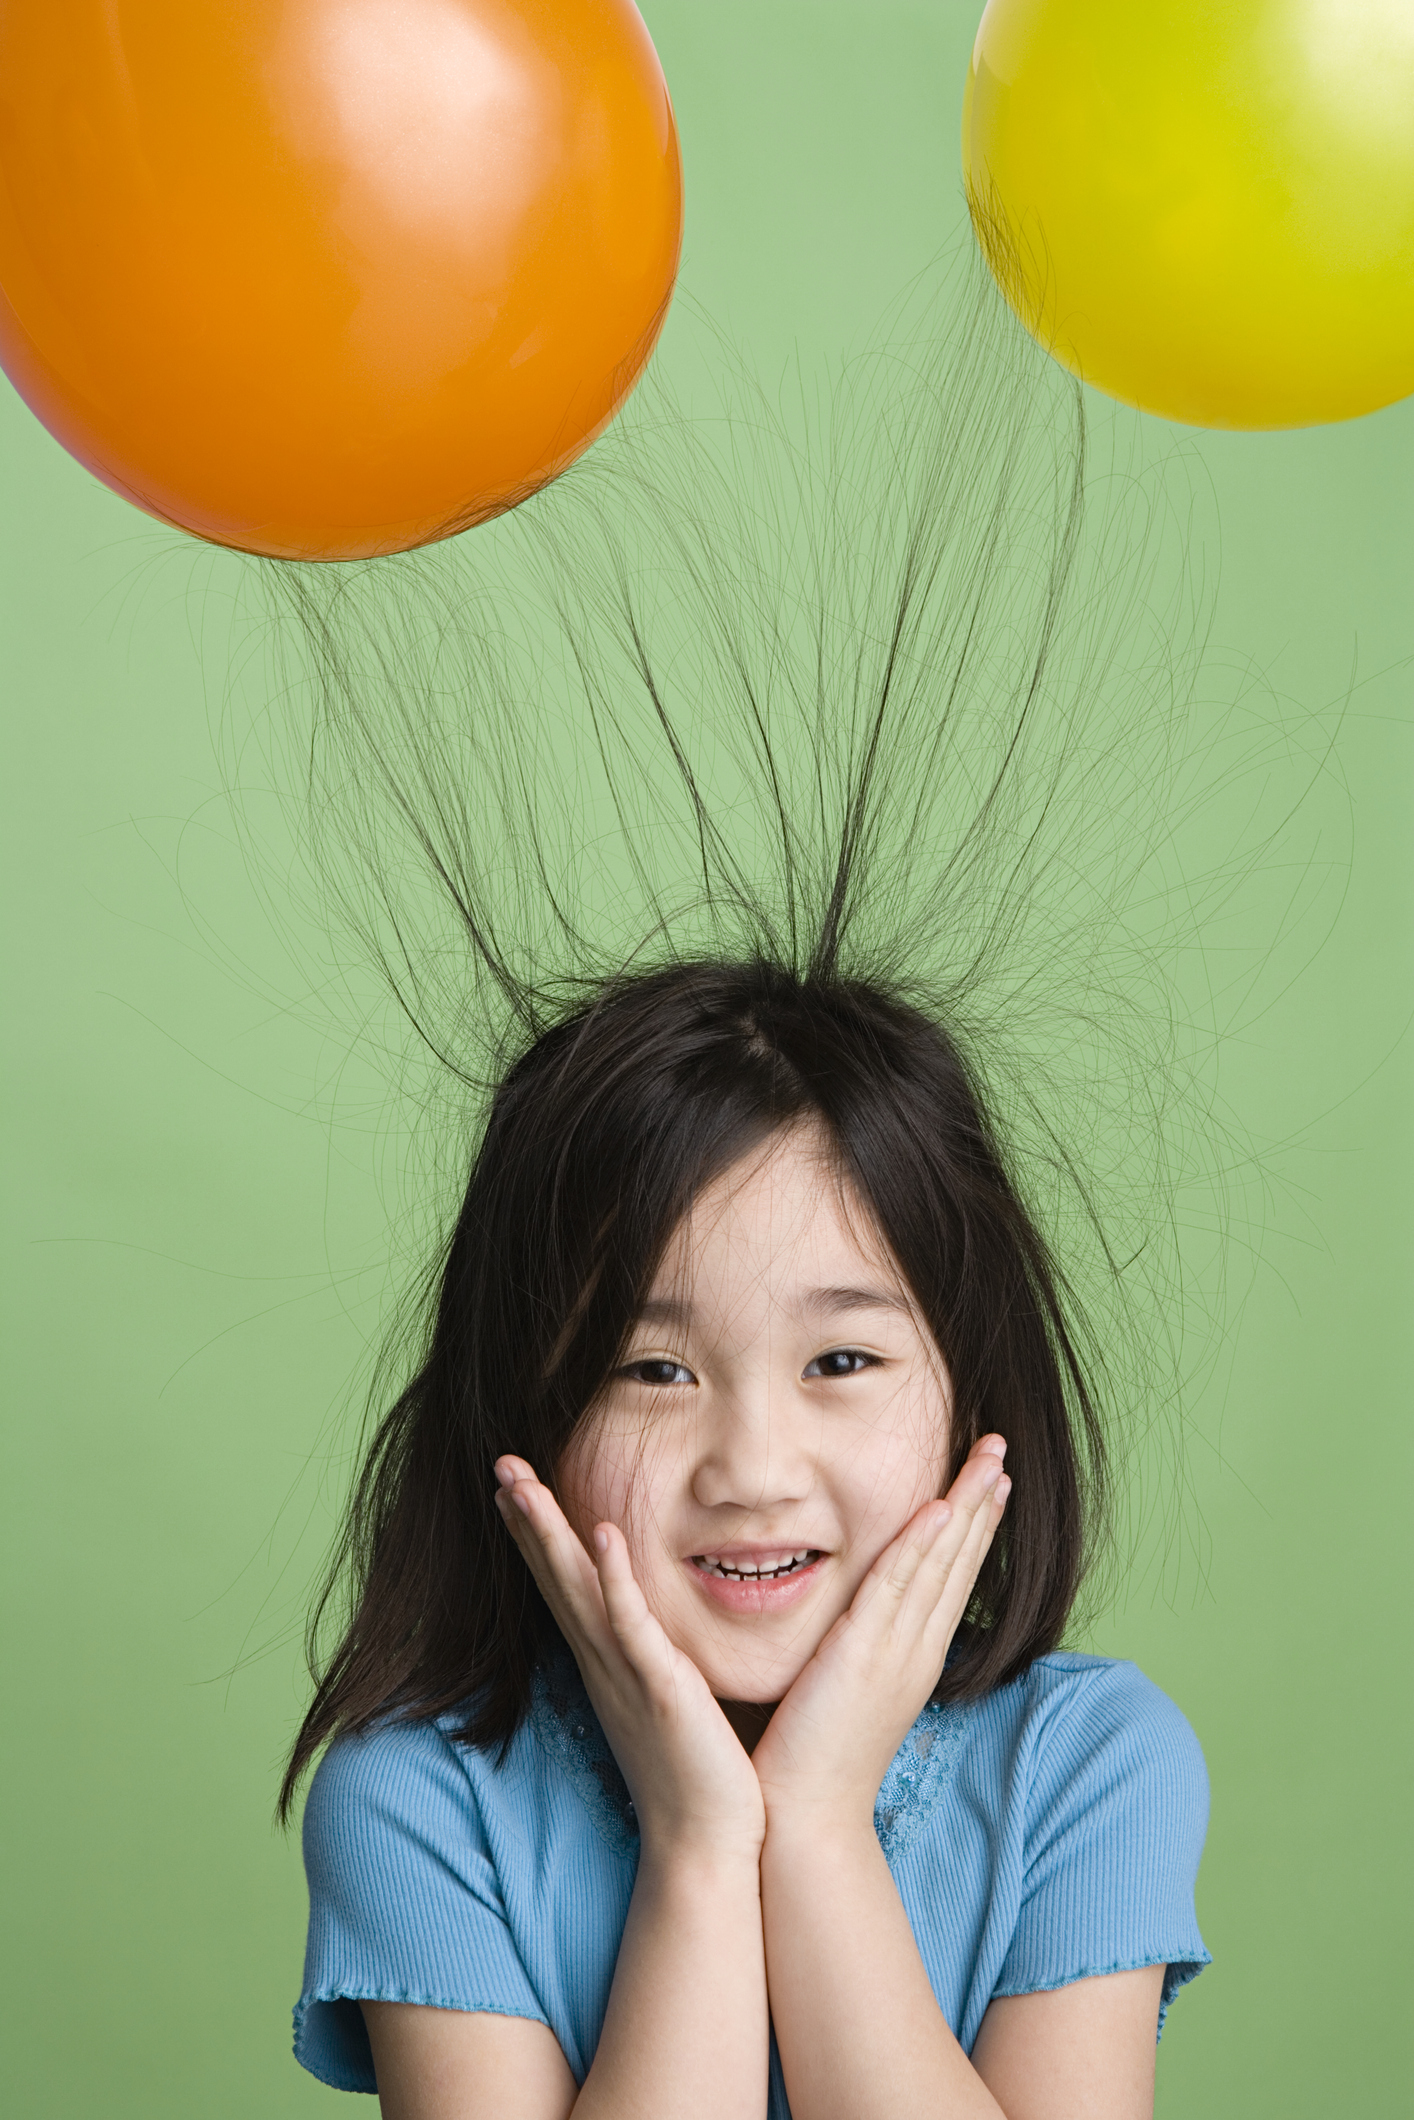 Static electricity caused by balloons makes a kid's hair stand up